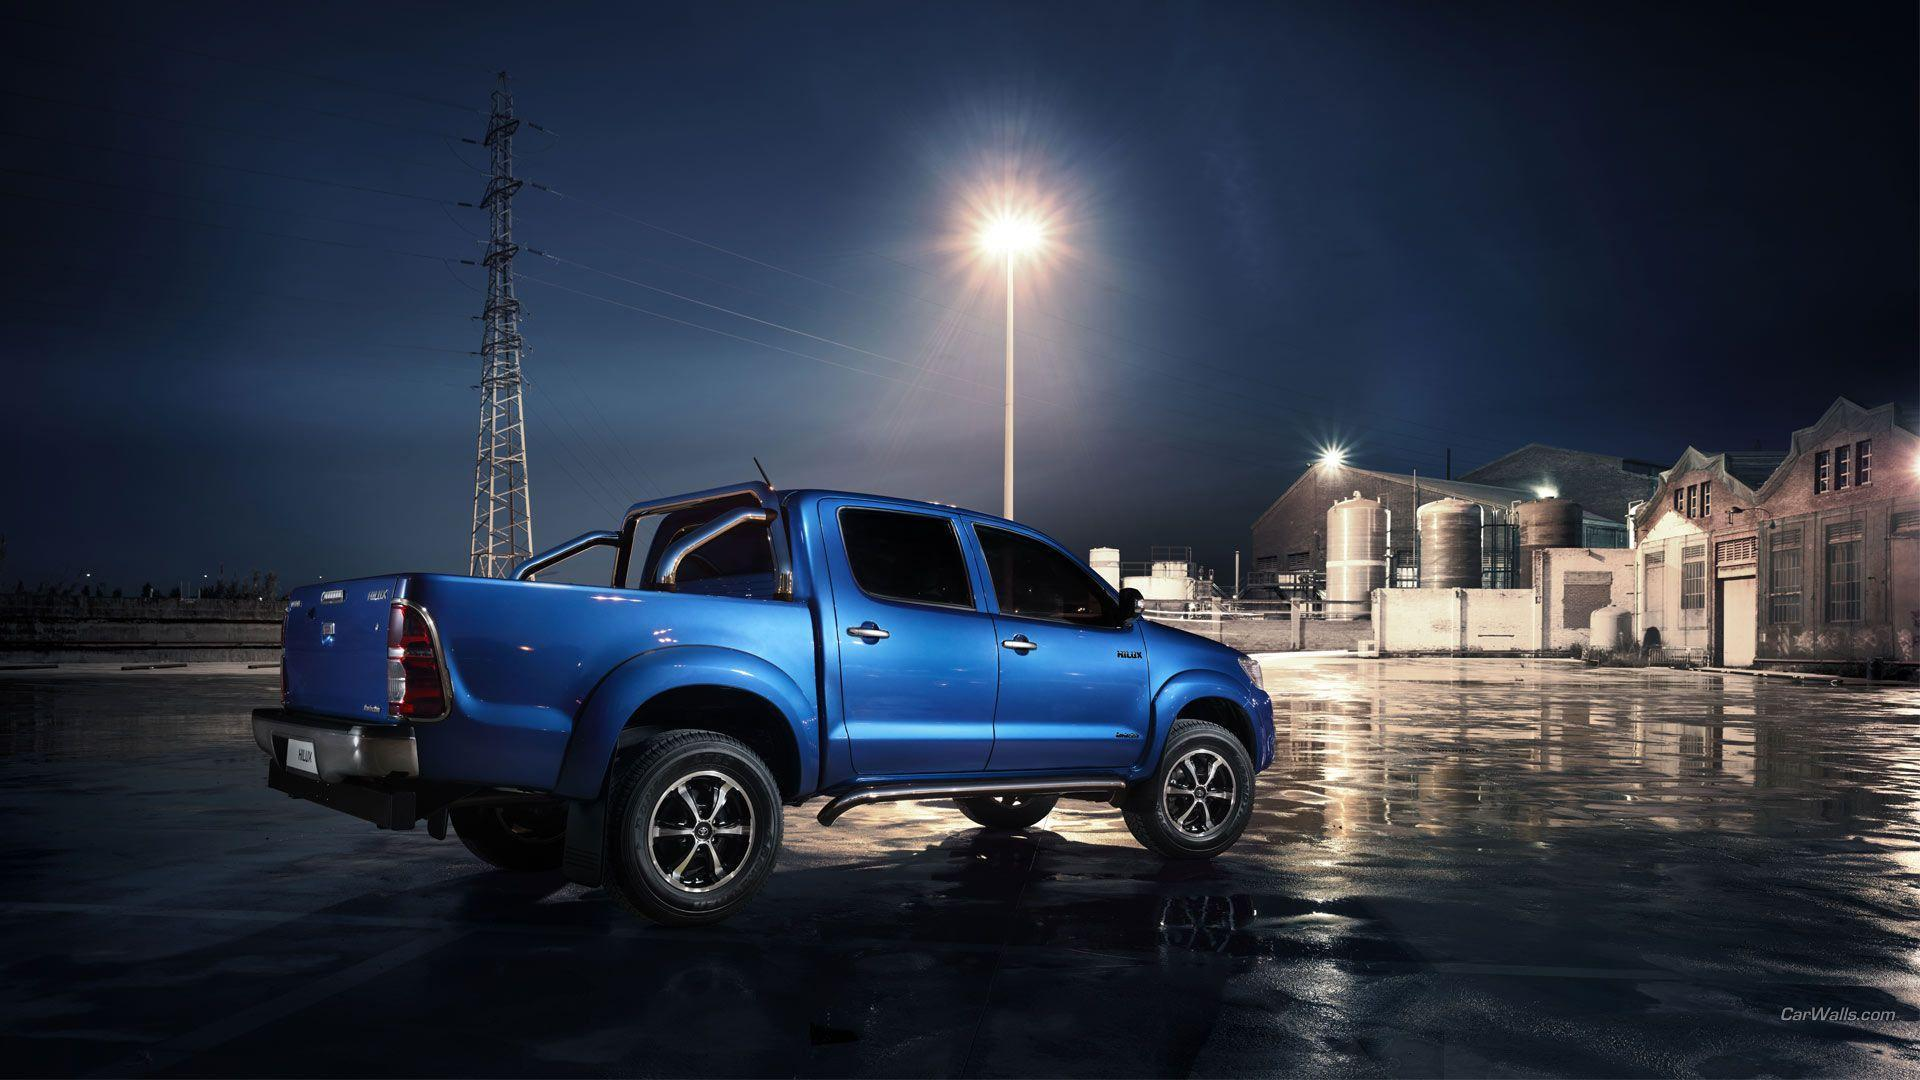 2014 Toyota Hilux Invincible Full HD Wallpapers and Backgrounds